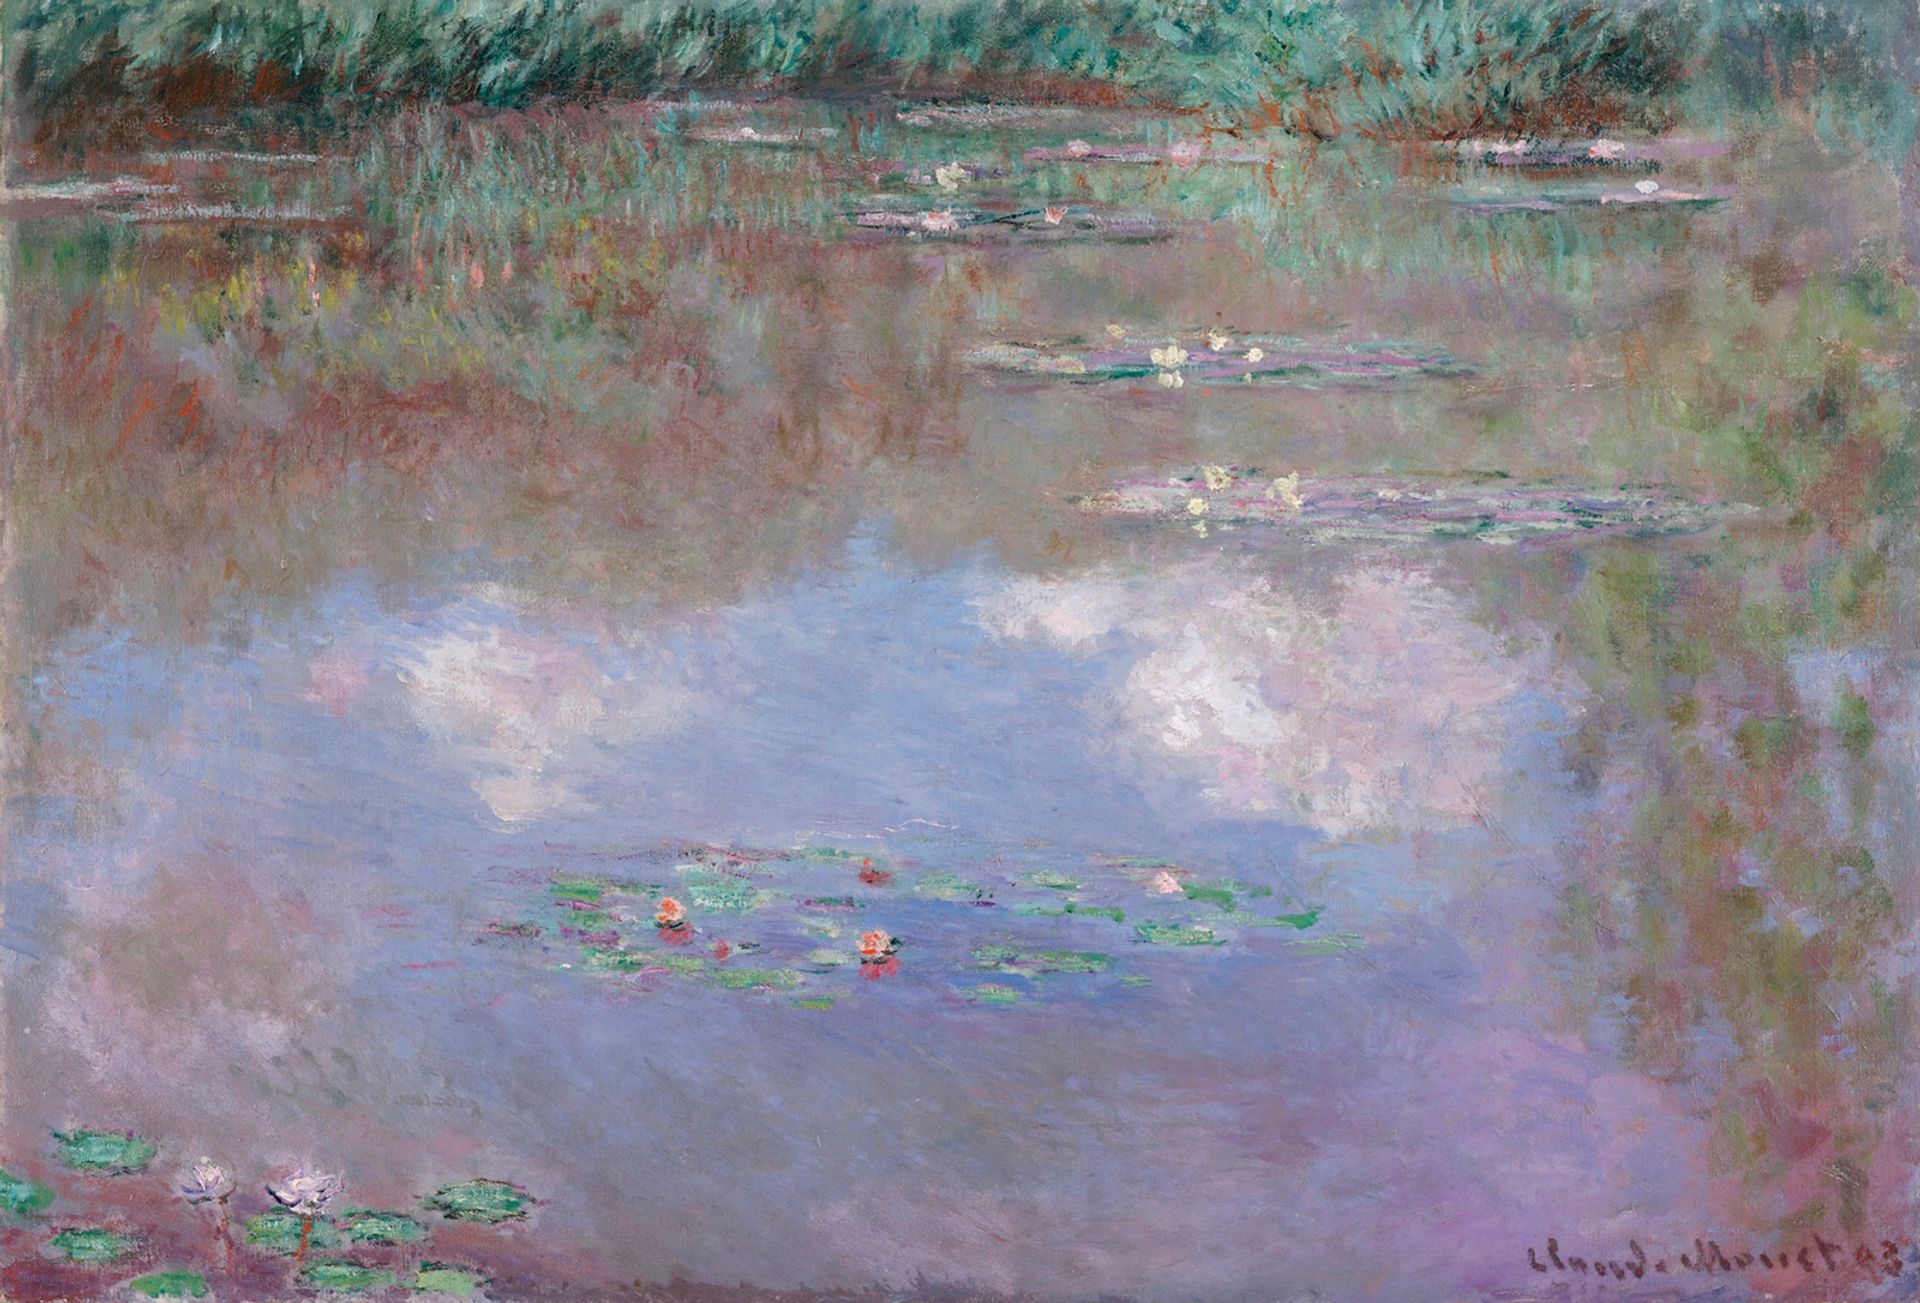 From the McDermott Collection: Claude Monet, The Water Lily Pond (1903)